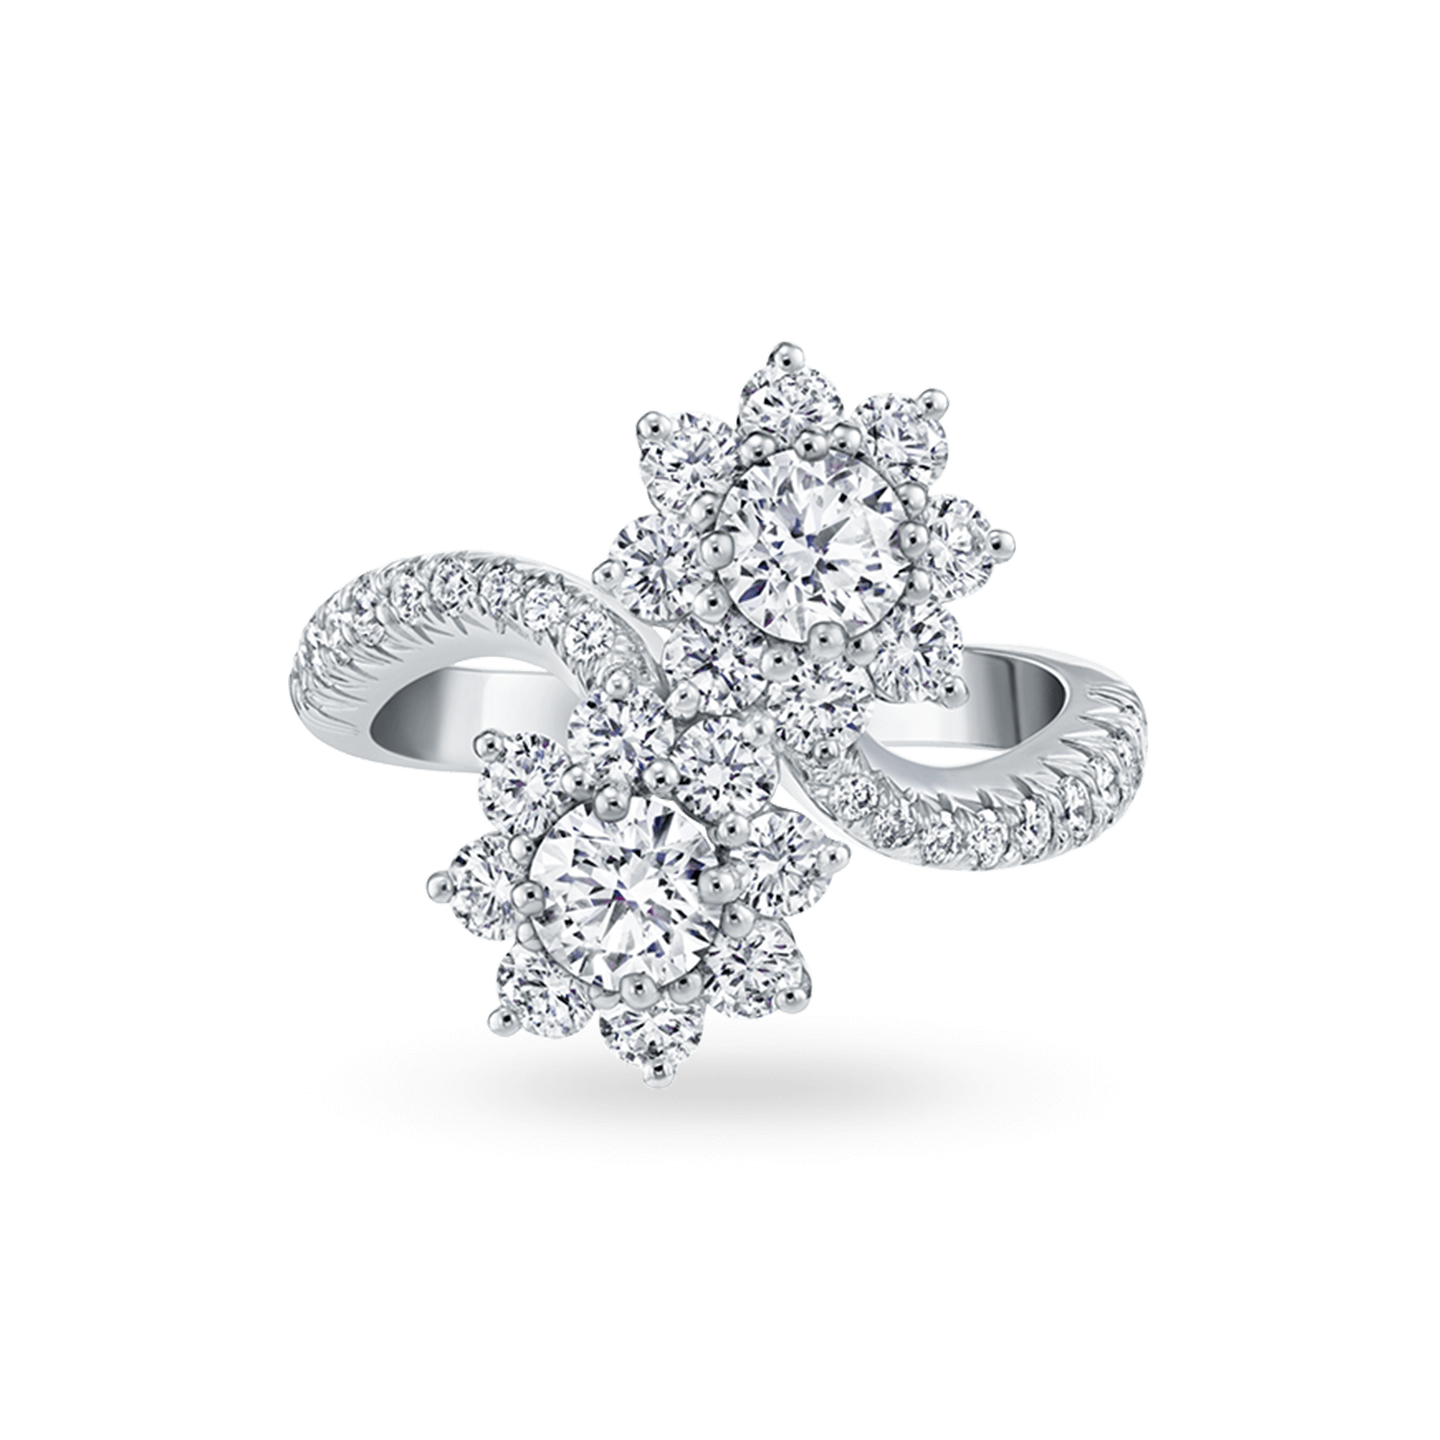 Sunflower Diamond Twin Ring, Product Image 1